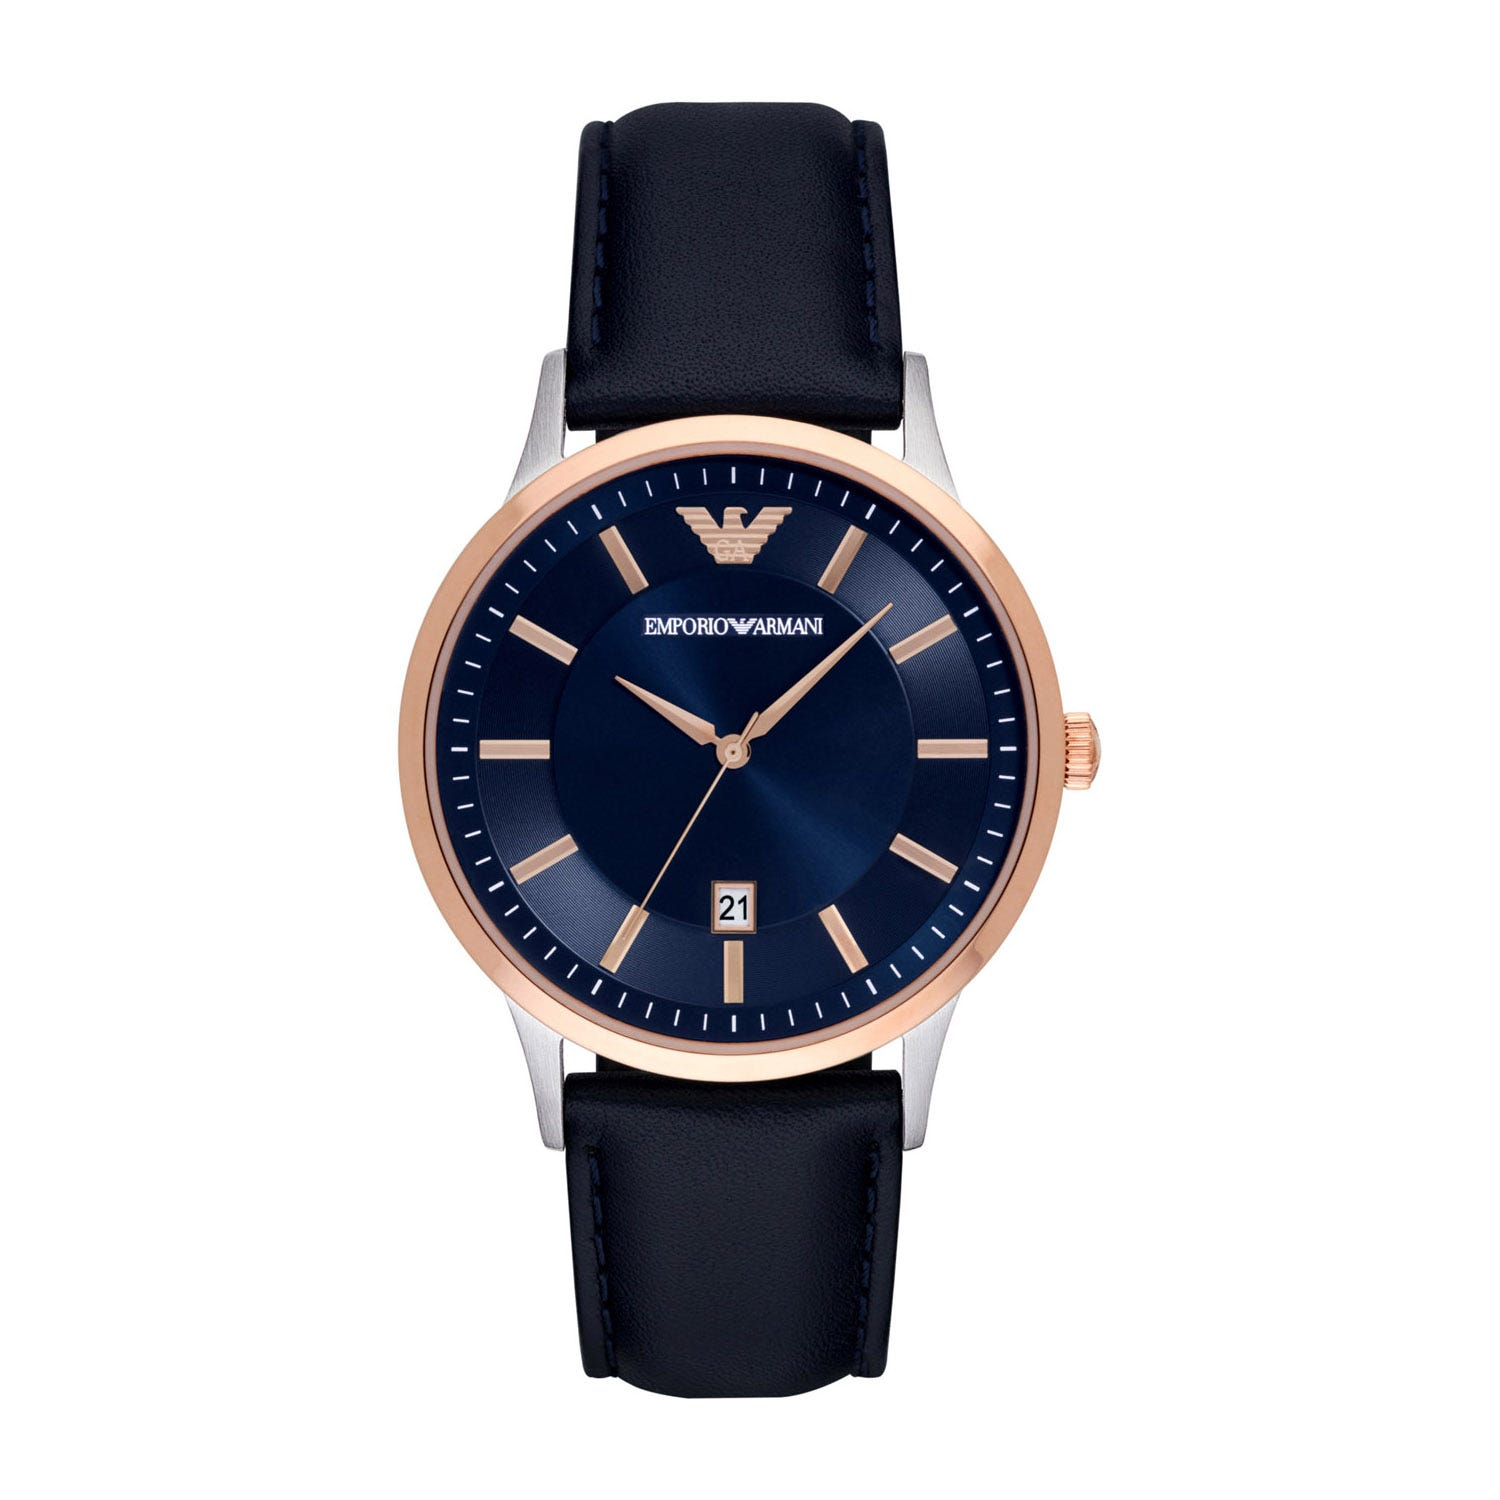 Emporio Armani Renato Men's Blue Dial and Blue Leather Strap Watch